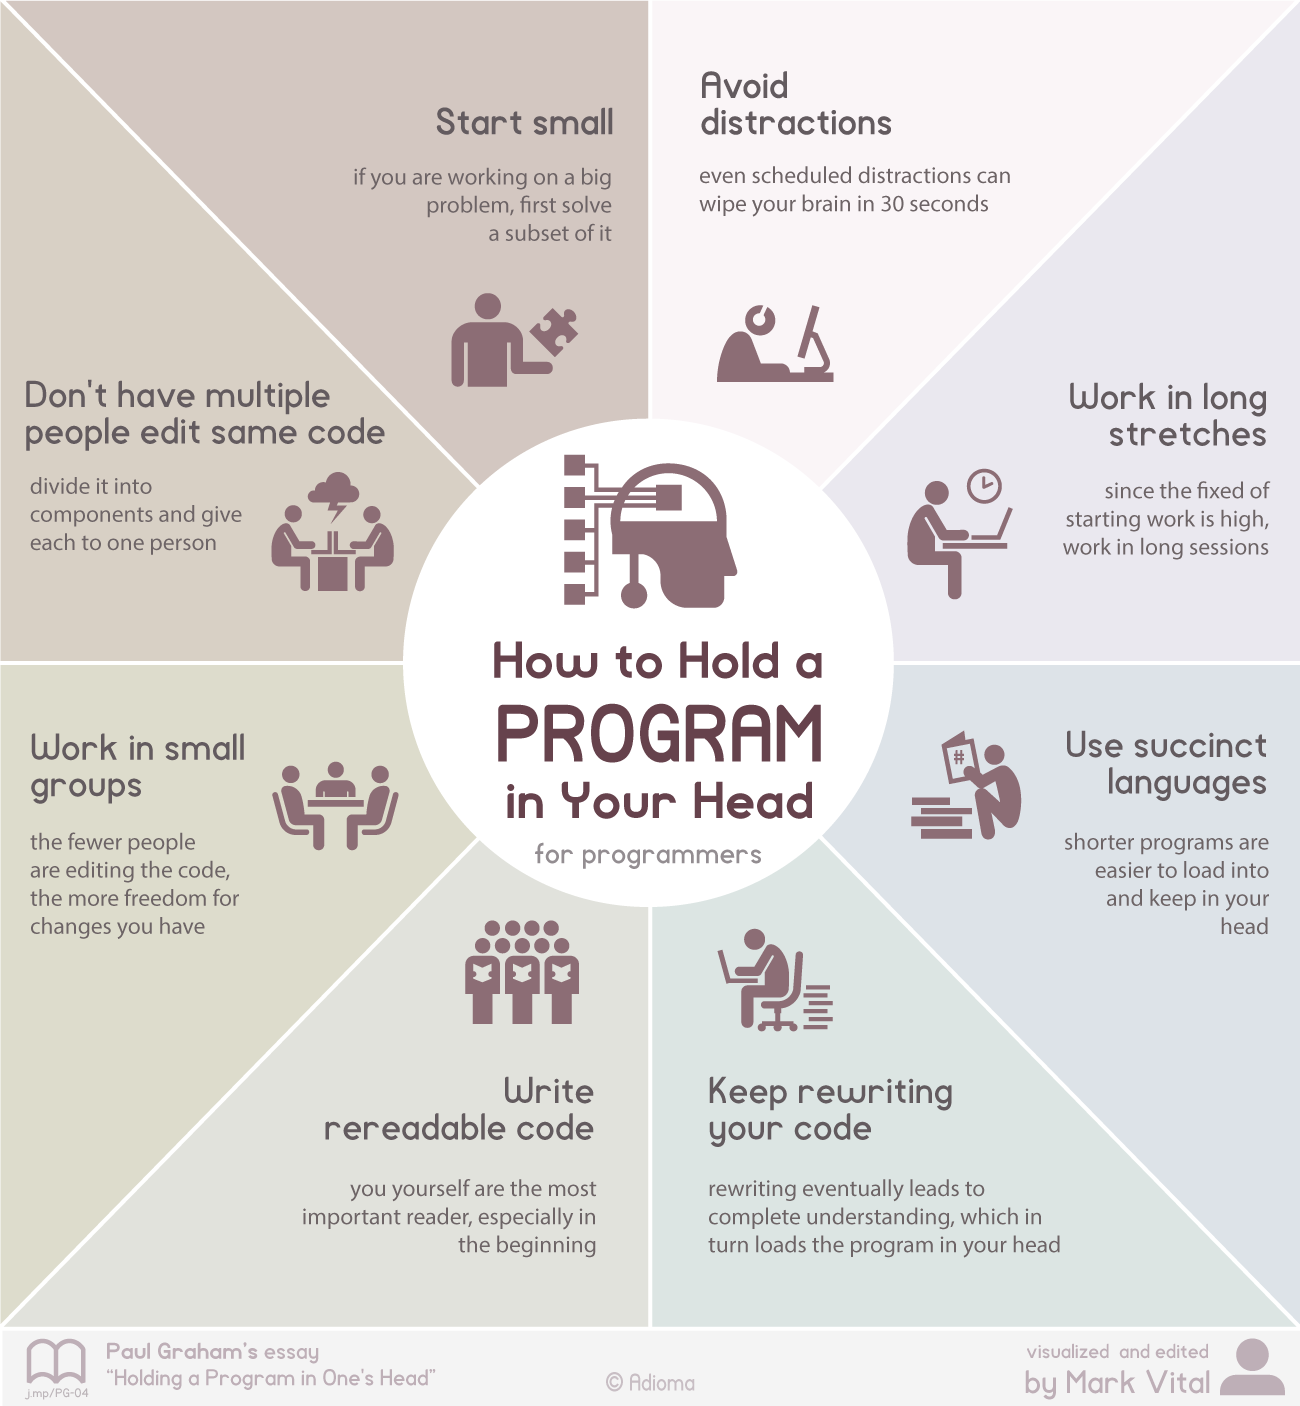 holding-a-program-in-ones-head-paul-graham-infographic